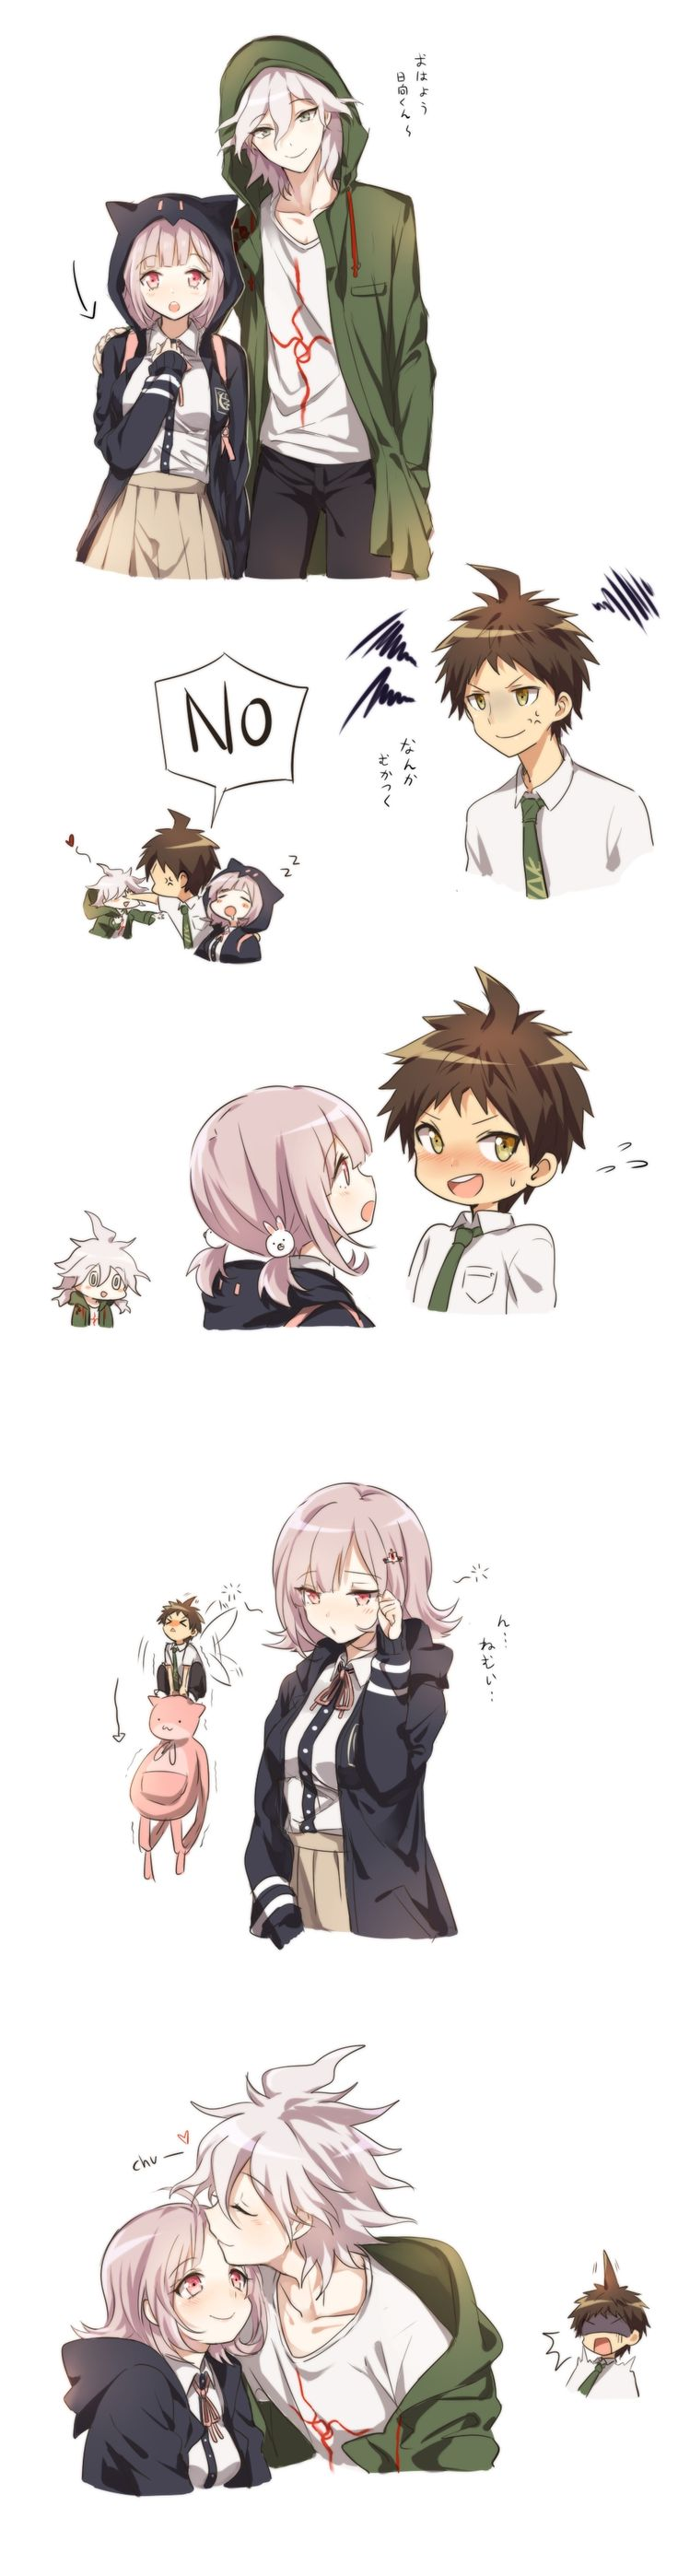 SDR2 - This is just what DR3 should be instead of inevitable heartbreak and tears--Hinata and Komaeda fighting over Nanami while she's not interested in either of them, but enjoys the attention. Yeah.